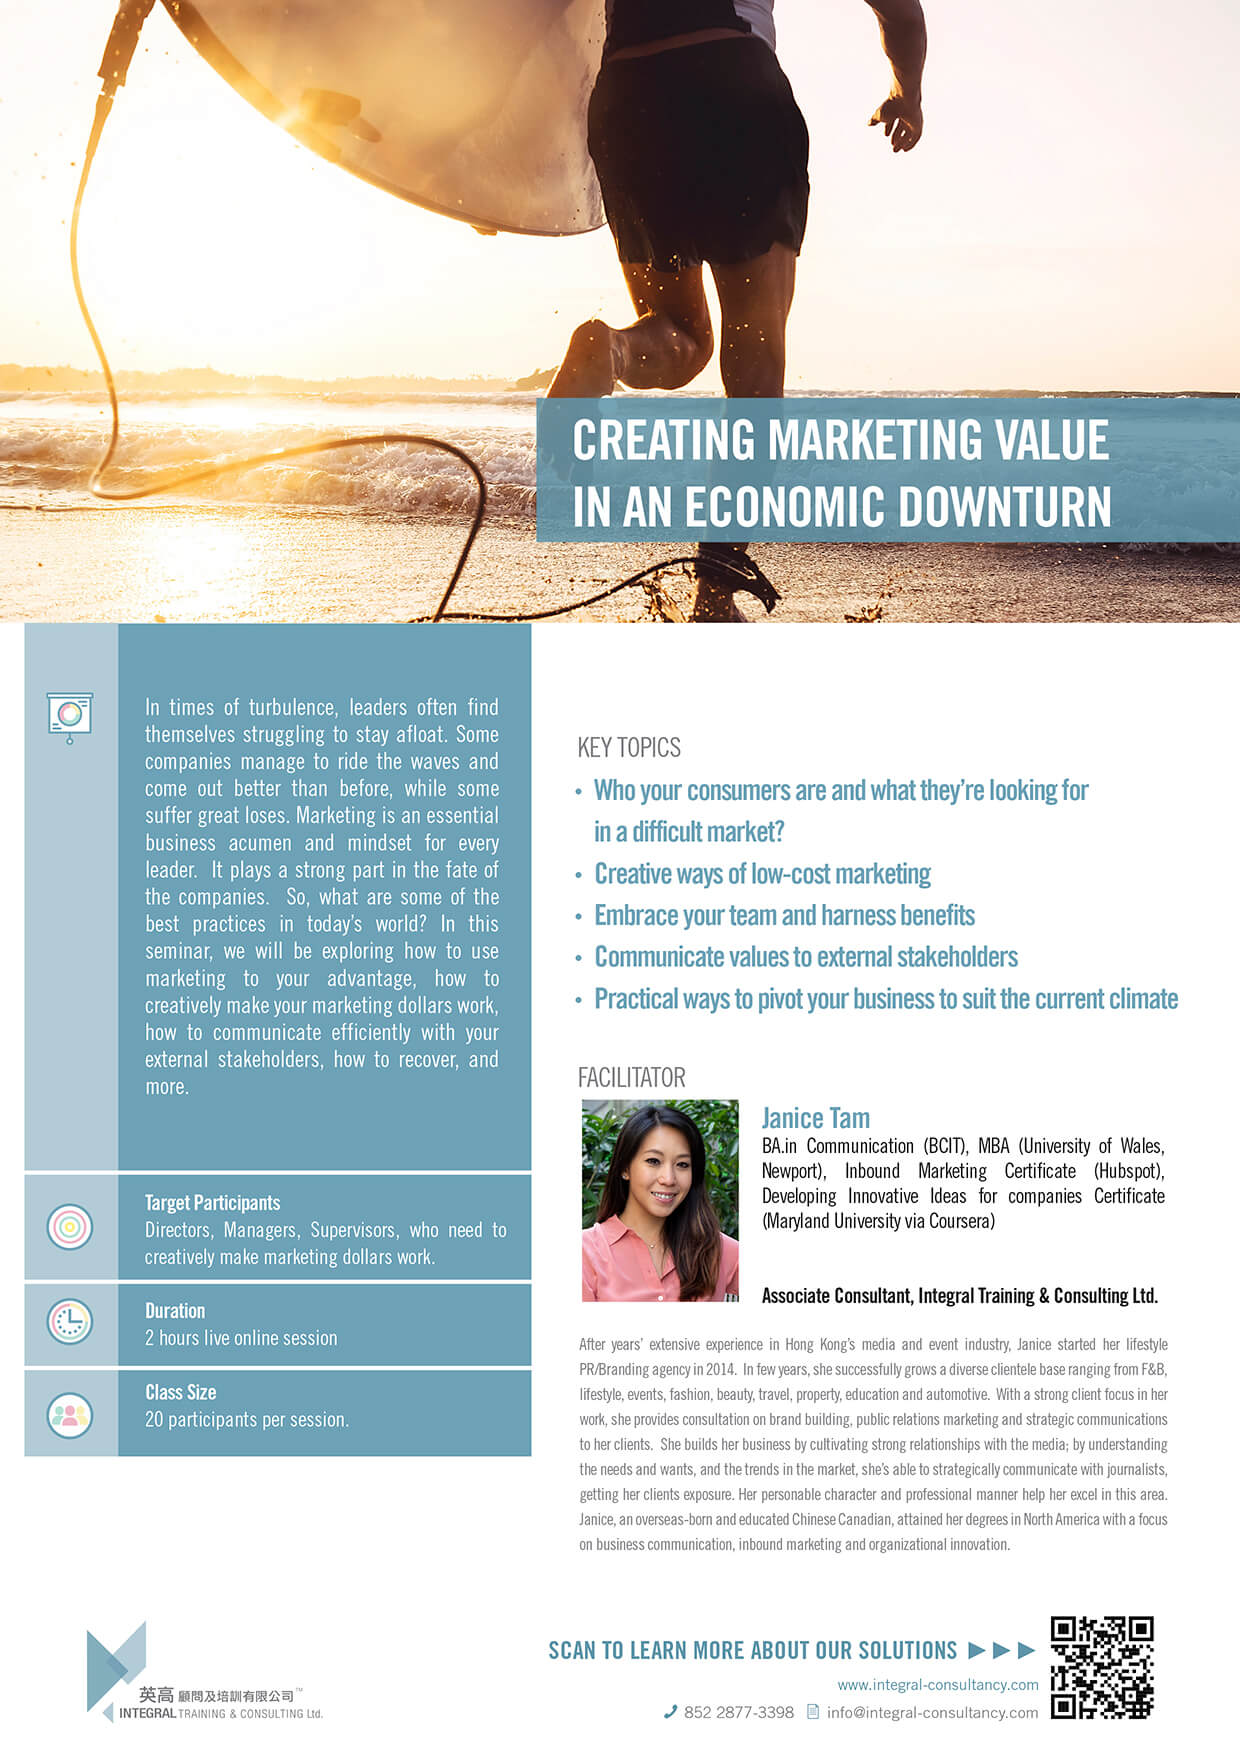 Creating Marketing Value in an Economic Downturn